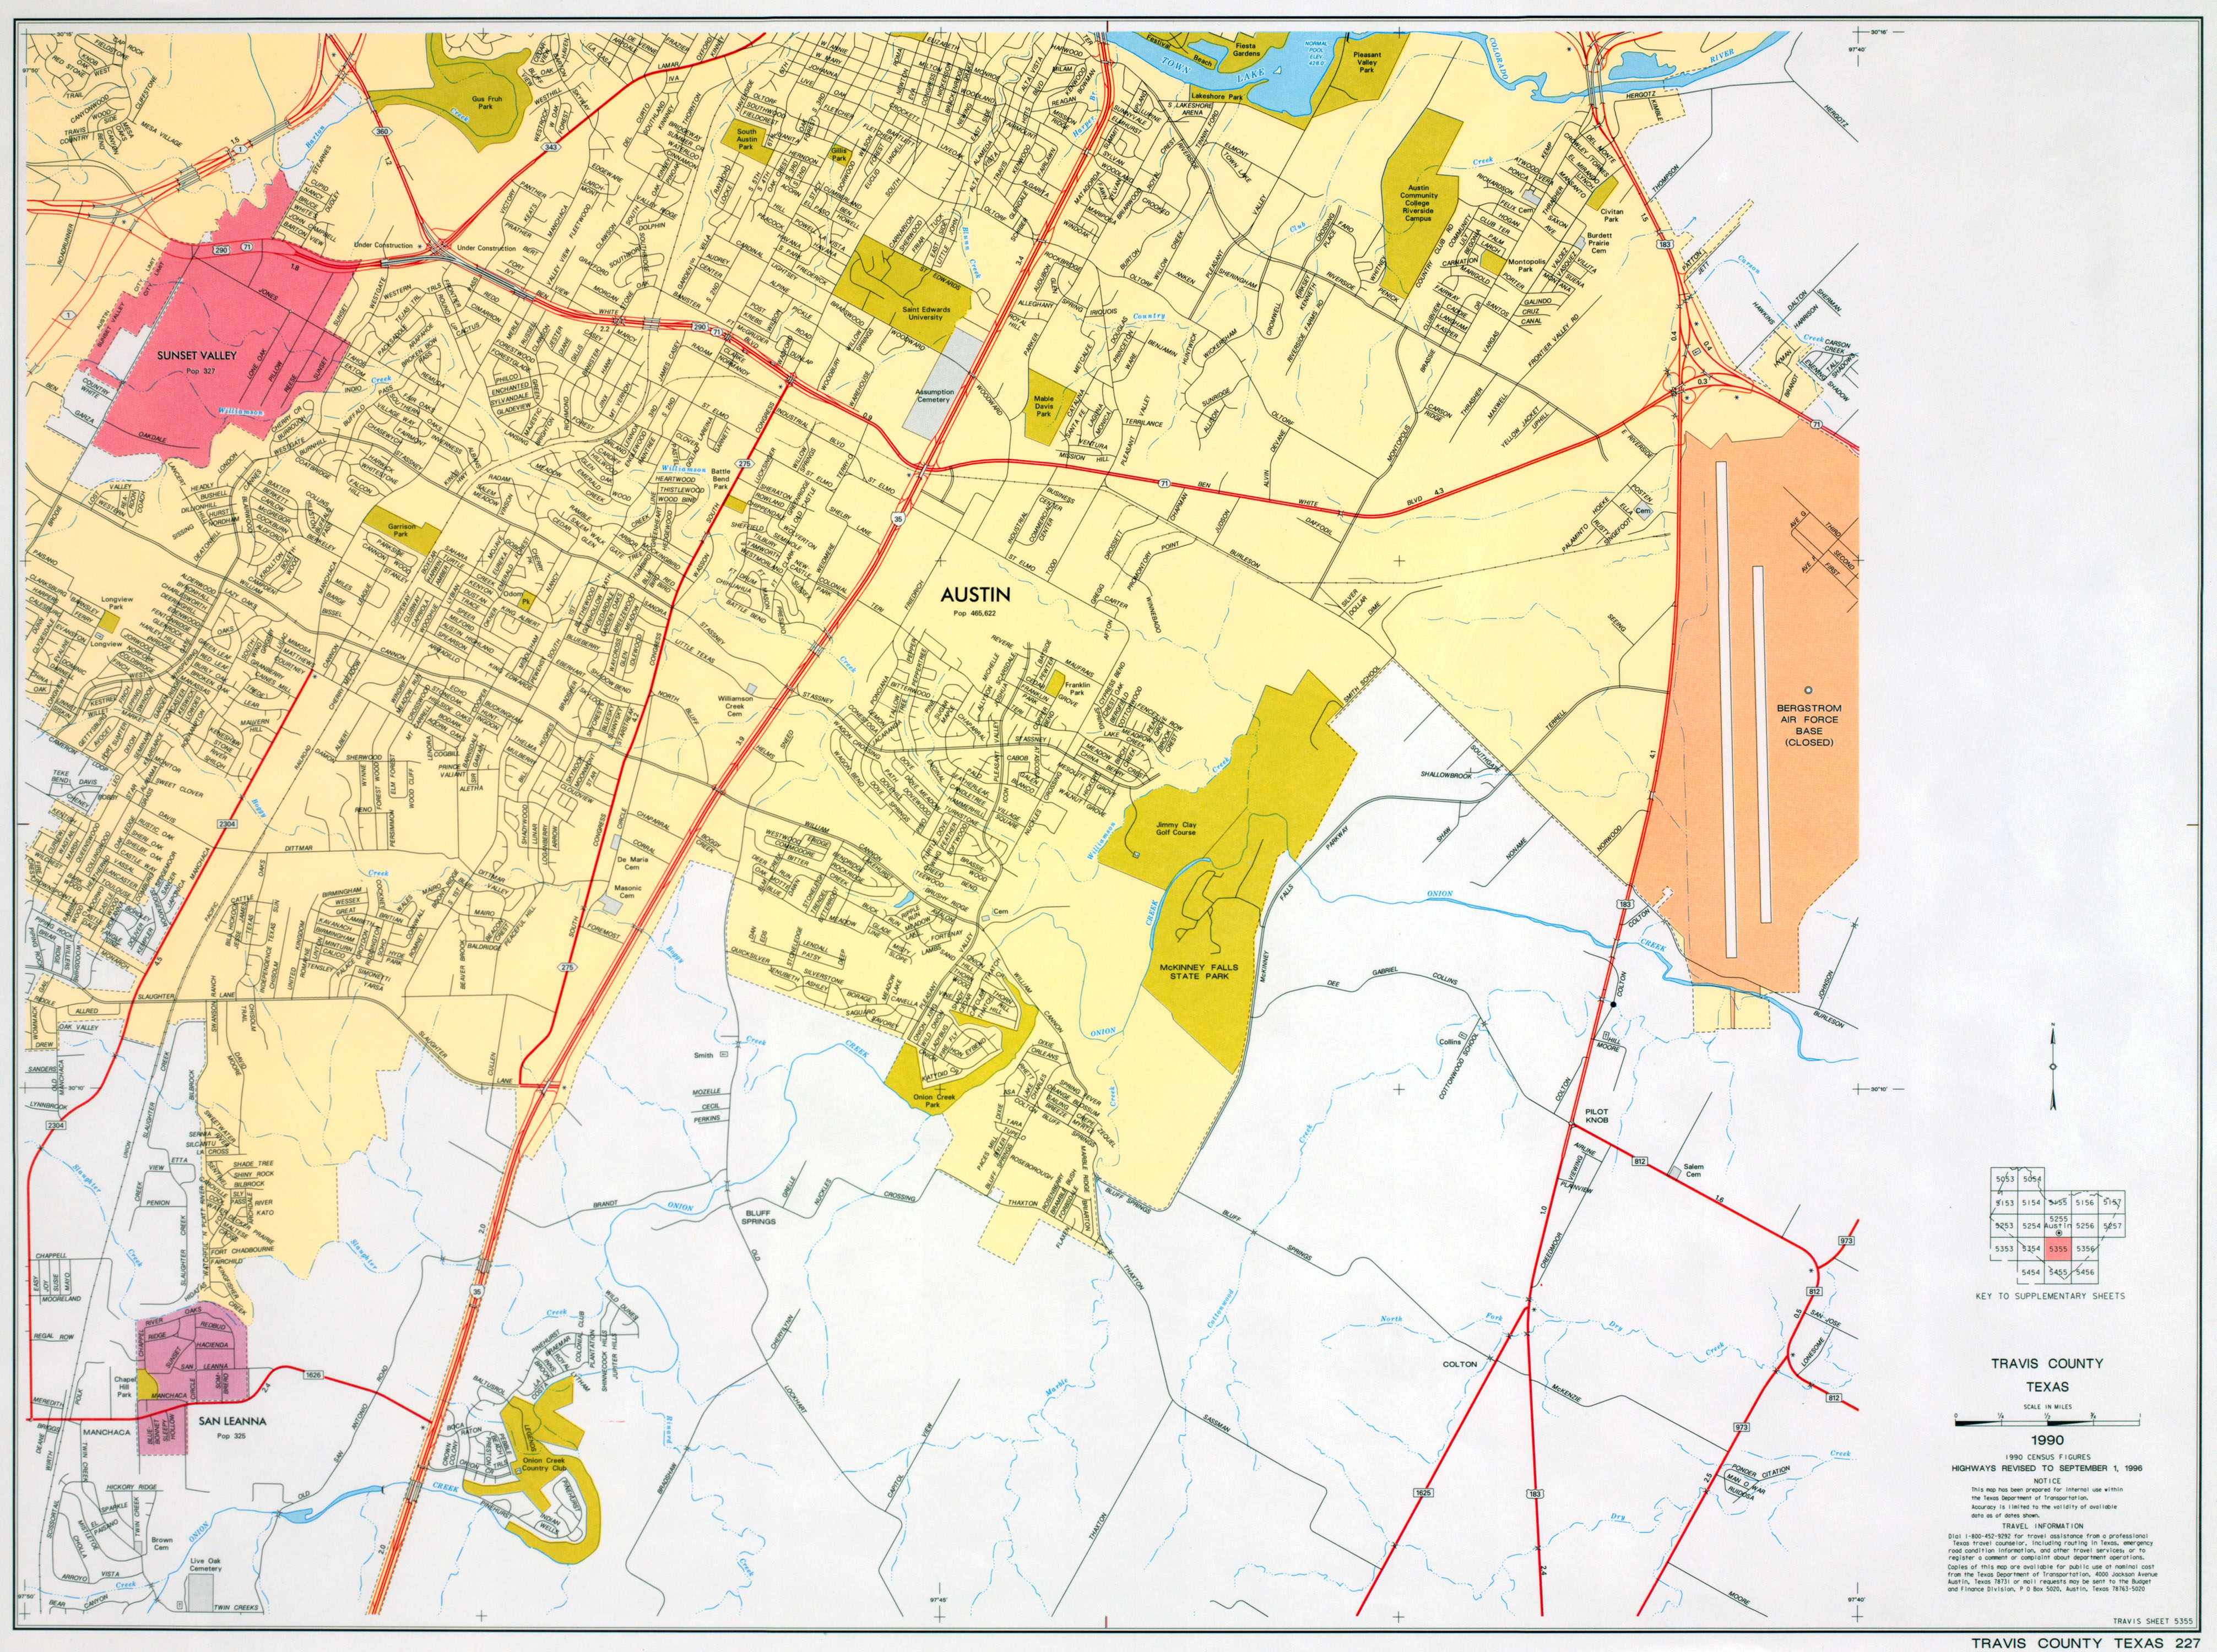 Austin, Texas Maps - Perry-Castañeda Map Collection - UT ... on victoria texas county map, austin texas river map, austin texas and surrounding areas map, arlington texas county map, wimberley texas county map, austin texas welcome, lake livingston texas county map, bryan texas county map, austin texas on map of texas, bastrop county texas map, austin texas location on map, round rock texas county map, denton texas county map, big spring texas county map, west texas county map, austin texas town map, athens texas county map, north texas county map, houston texas county map, beaumont texas county map,